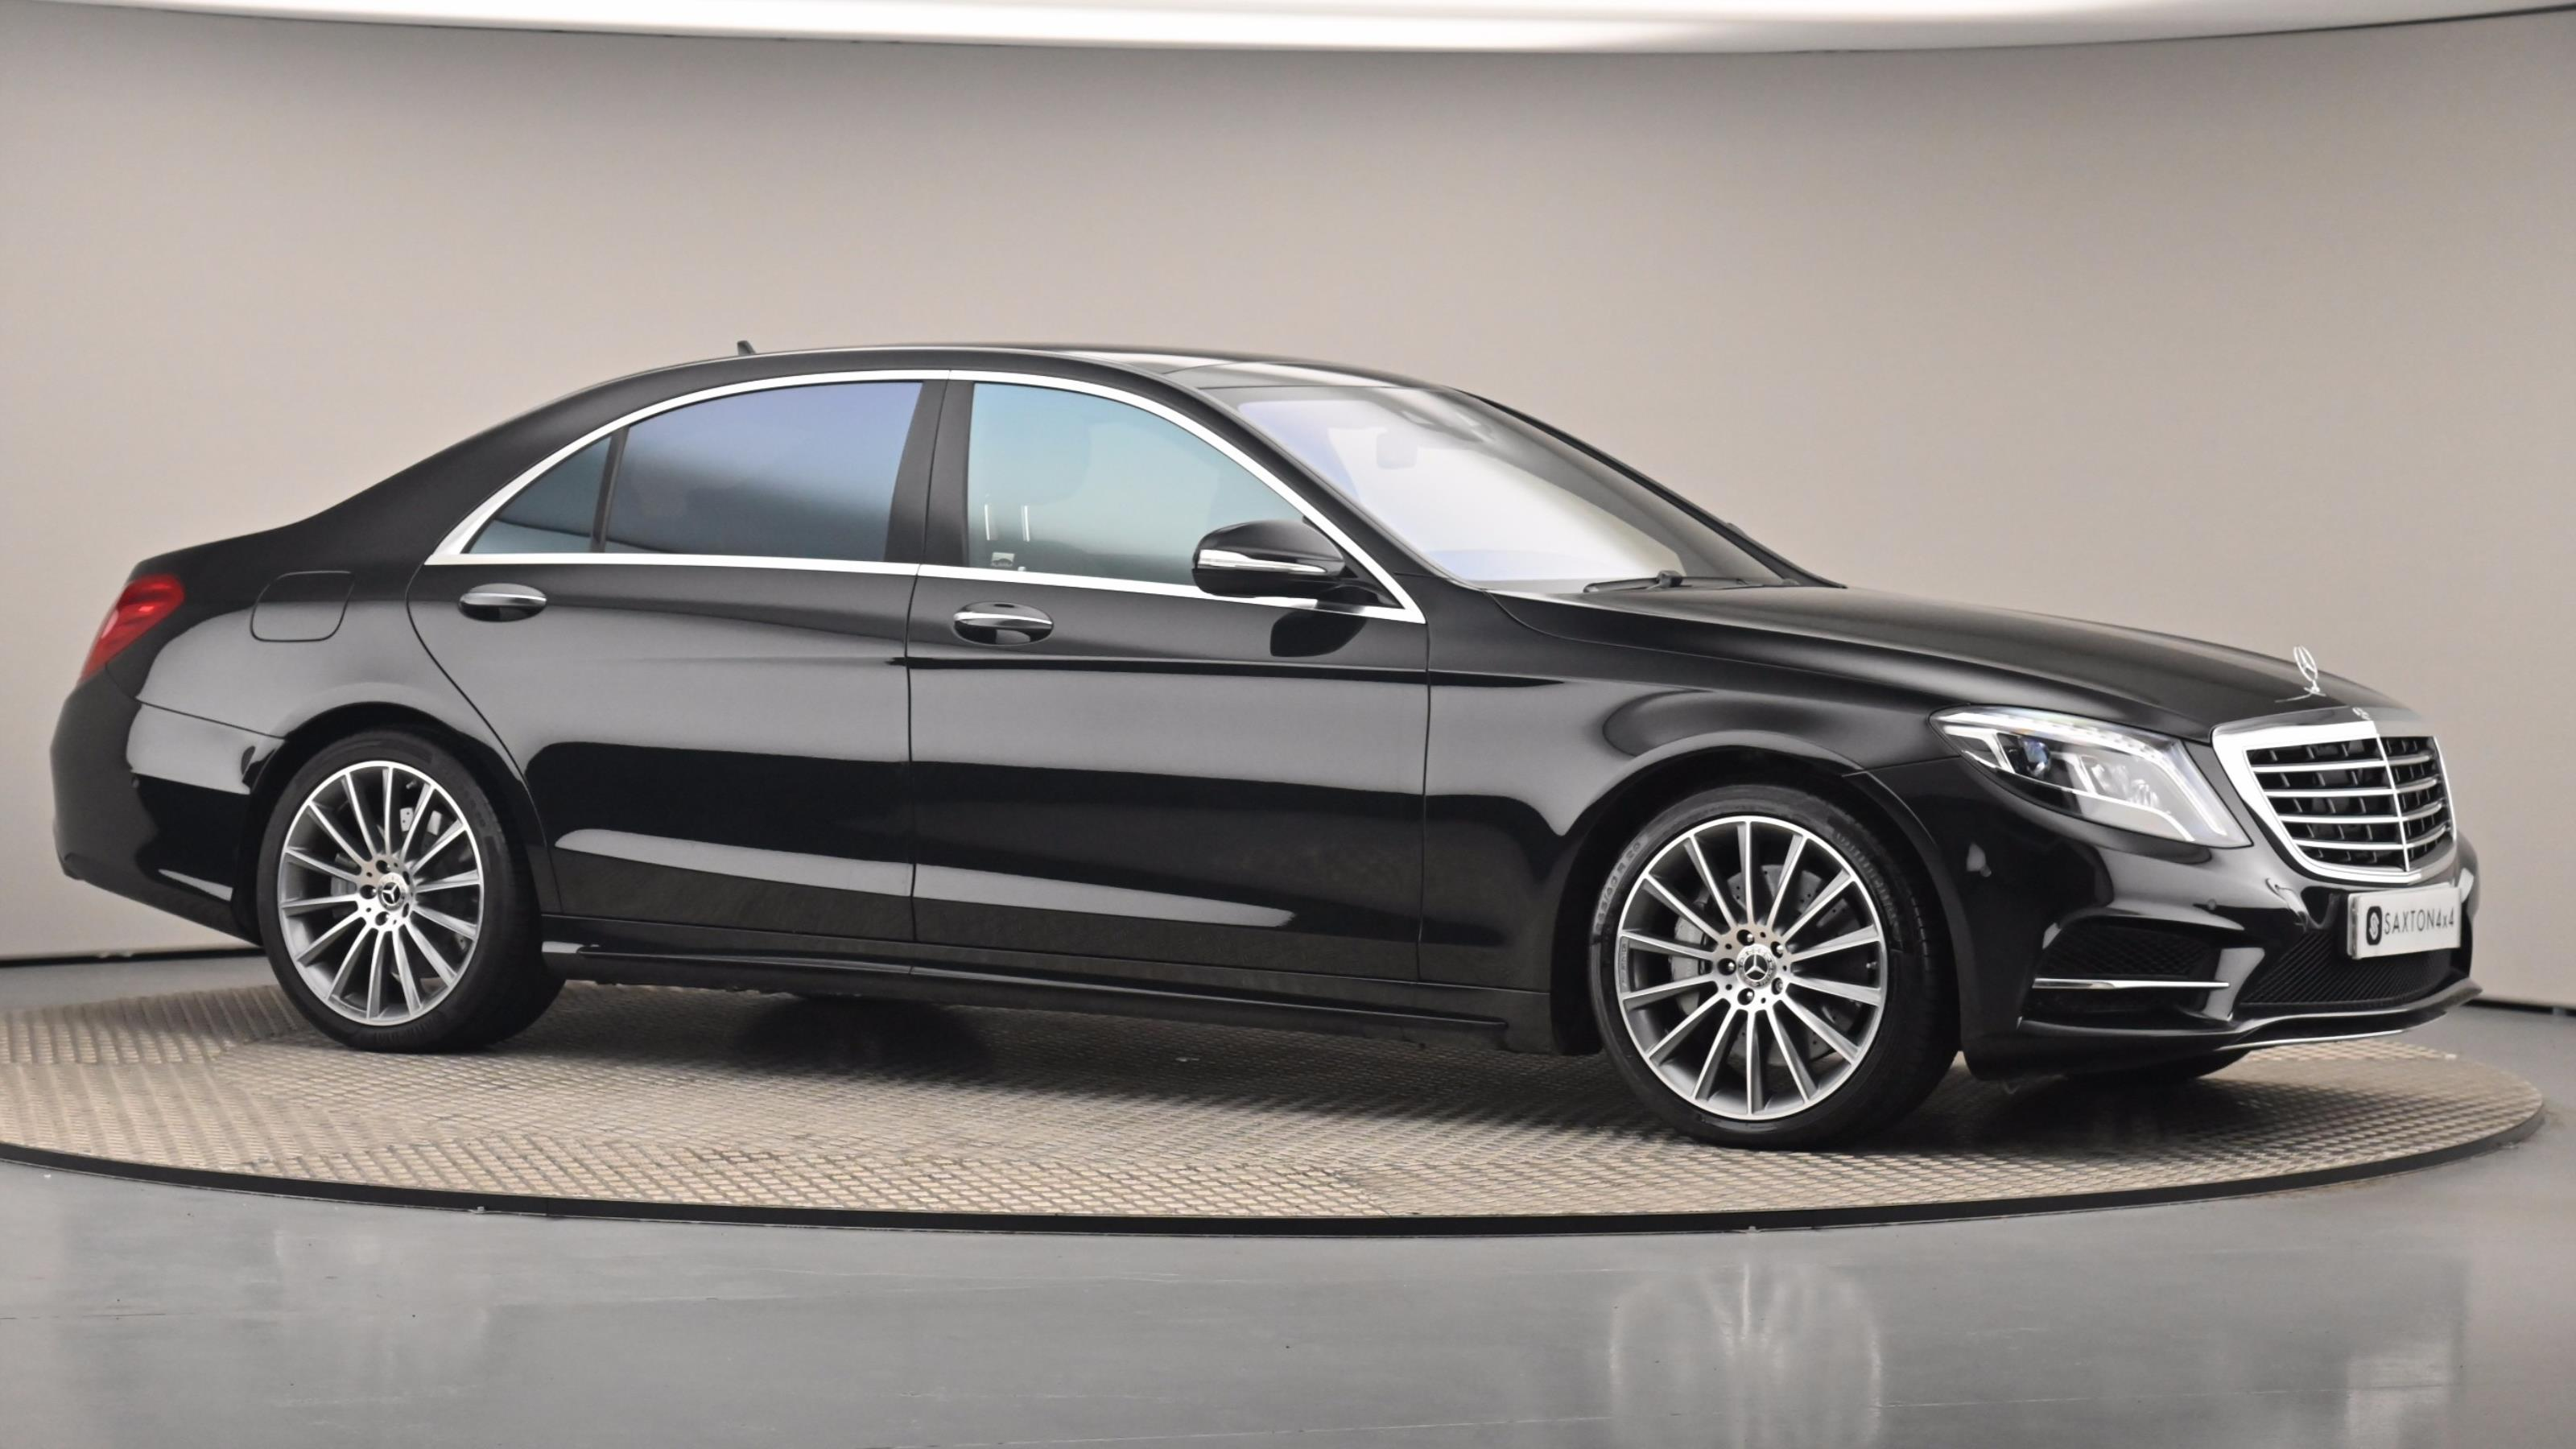 Used 2017 Mercedes-Benz S CLASS S500L AMG Line 4dr 9G-Tronic [Executive] at Saxton4x4